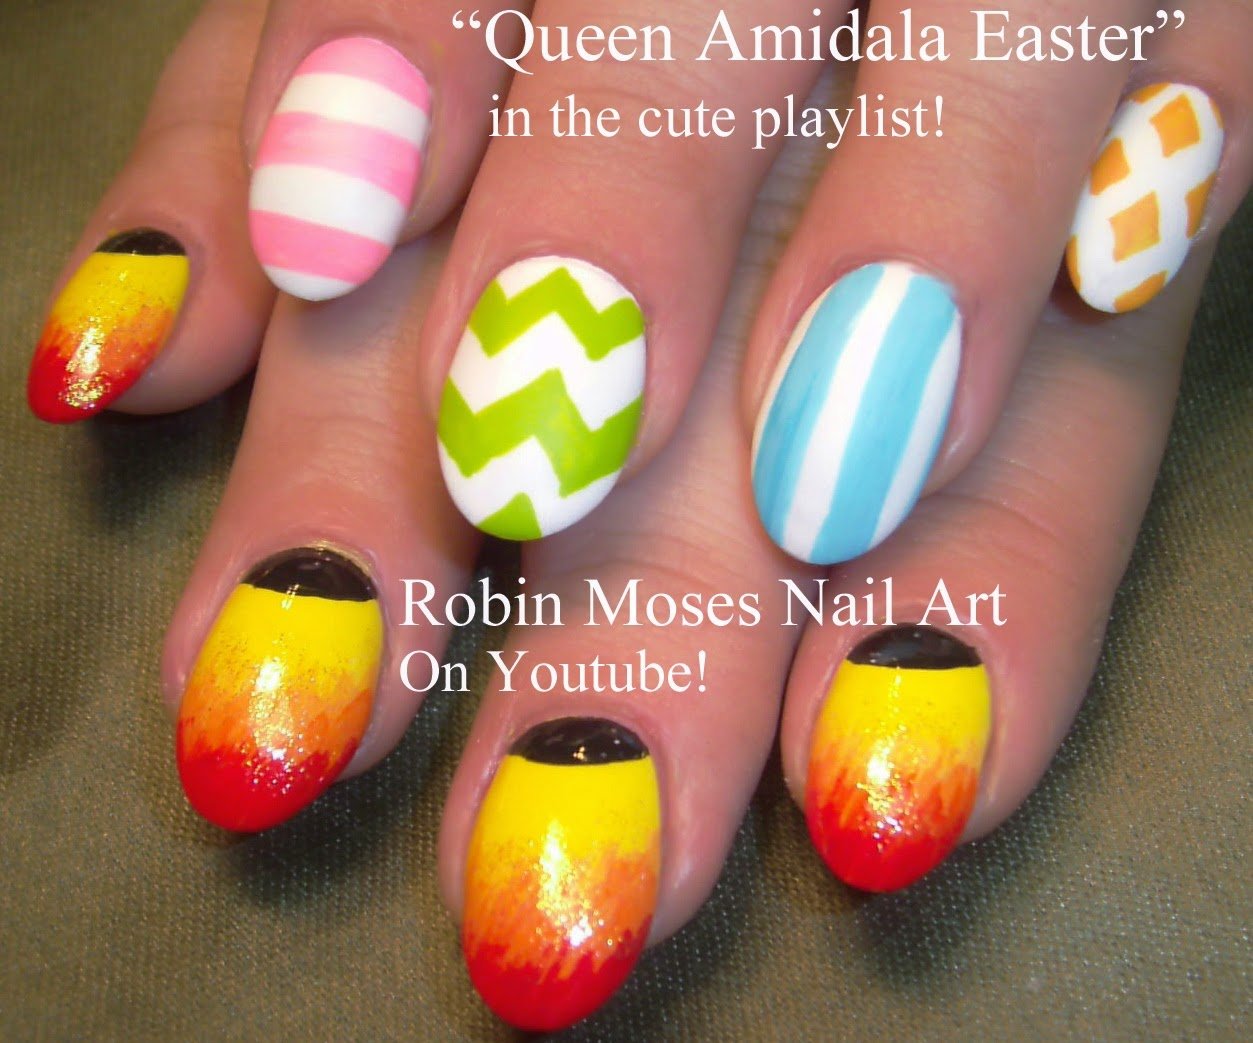 Robin Moses Nail Art March 2015